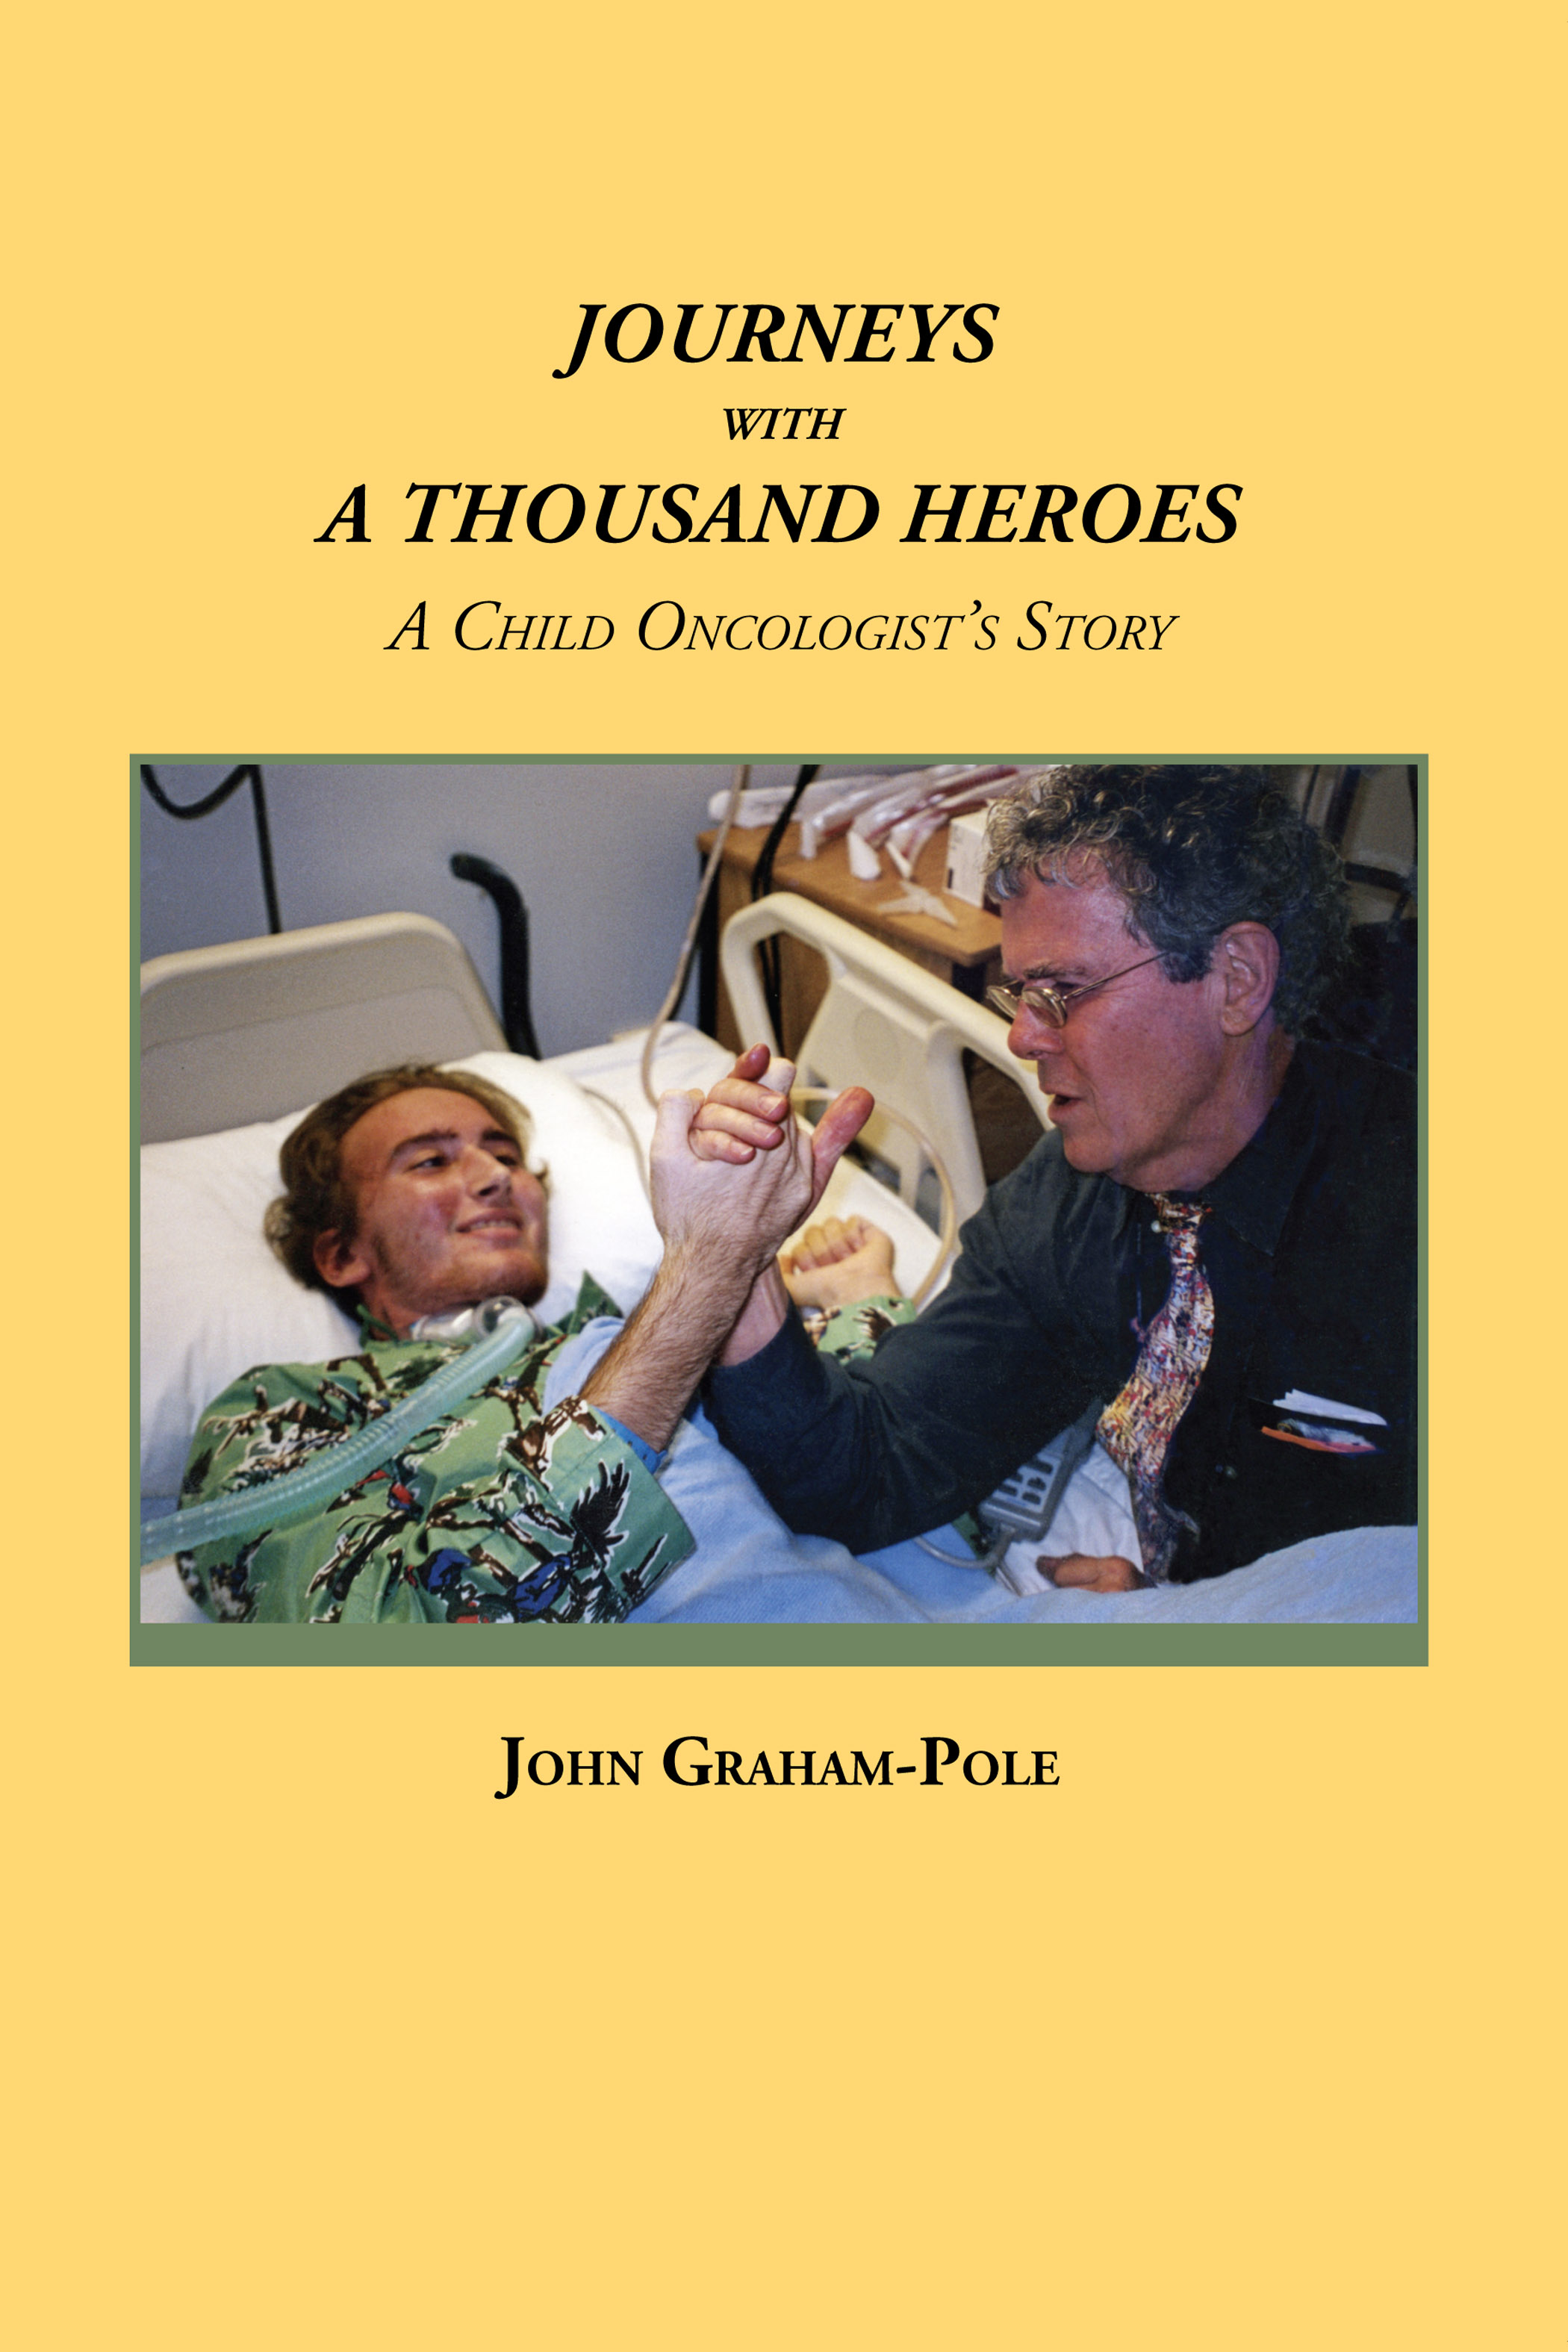 Journeys with 1000 Heroes, Arts in Health Pioneer Publishes Memoir